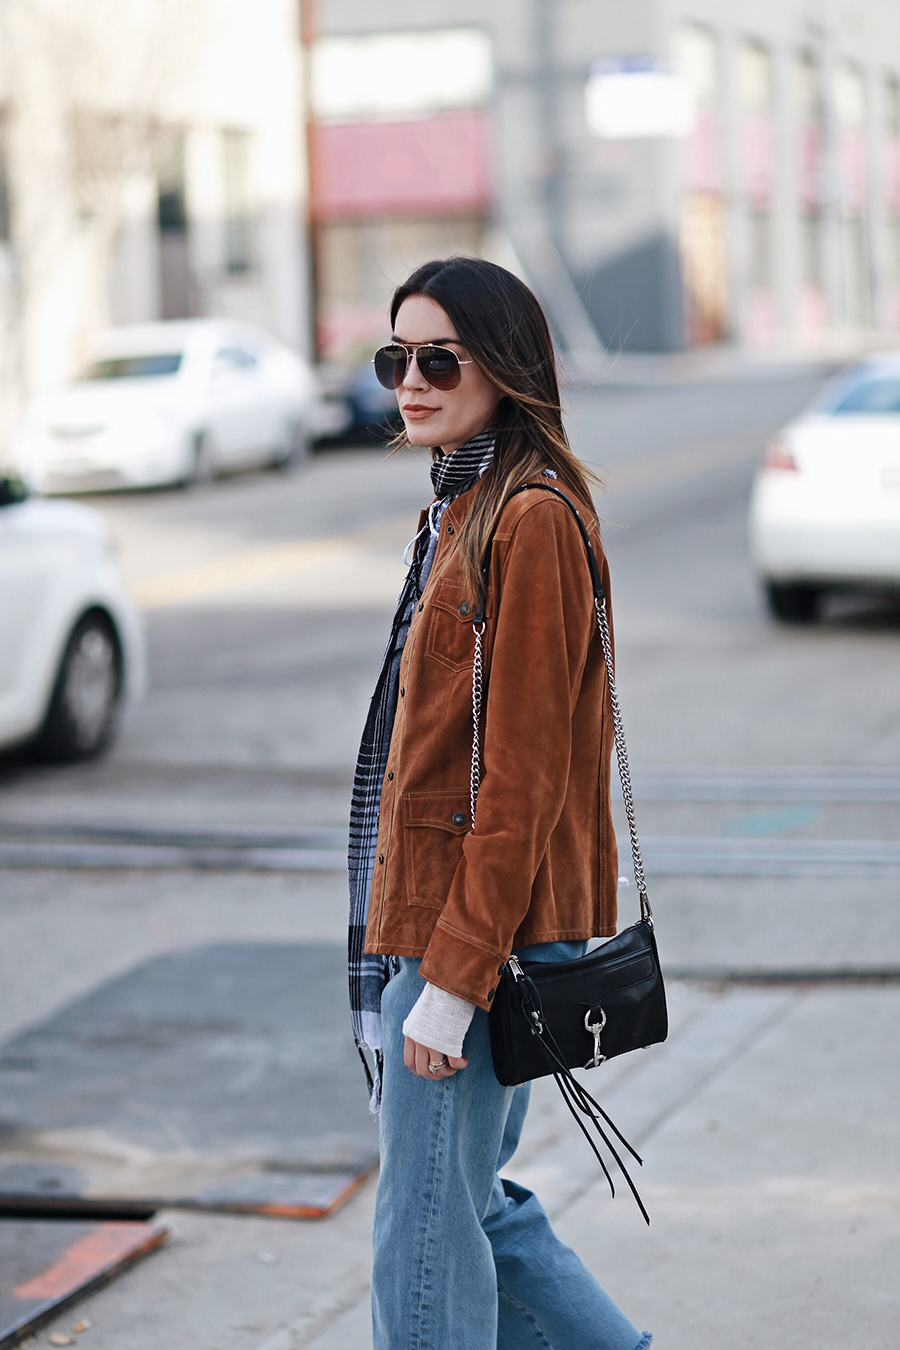 How to wear a suede leather jacket